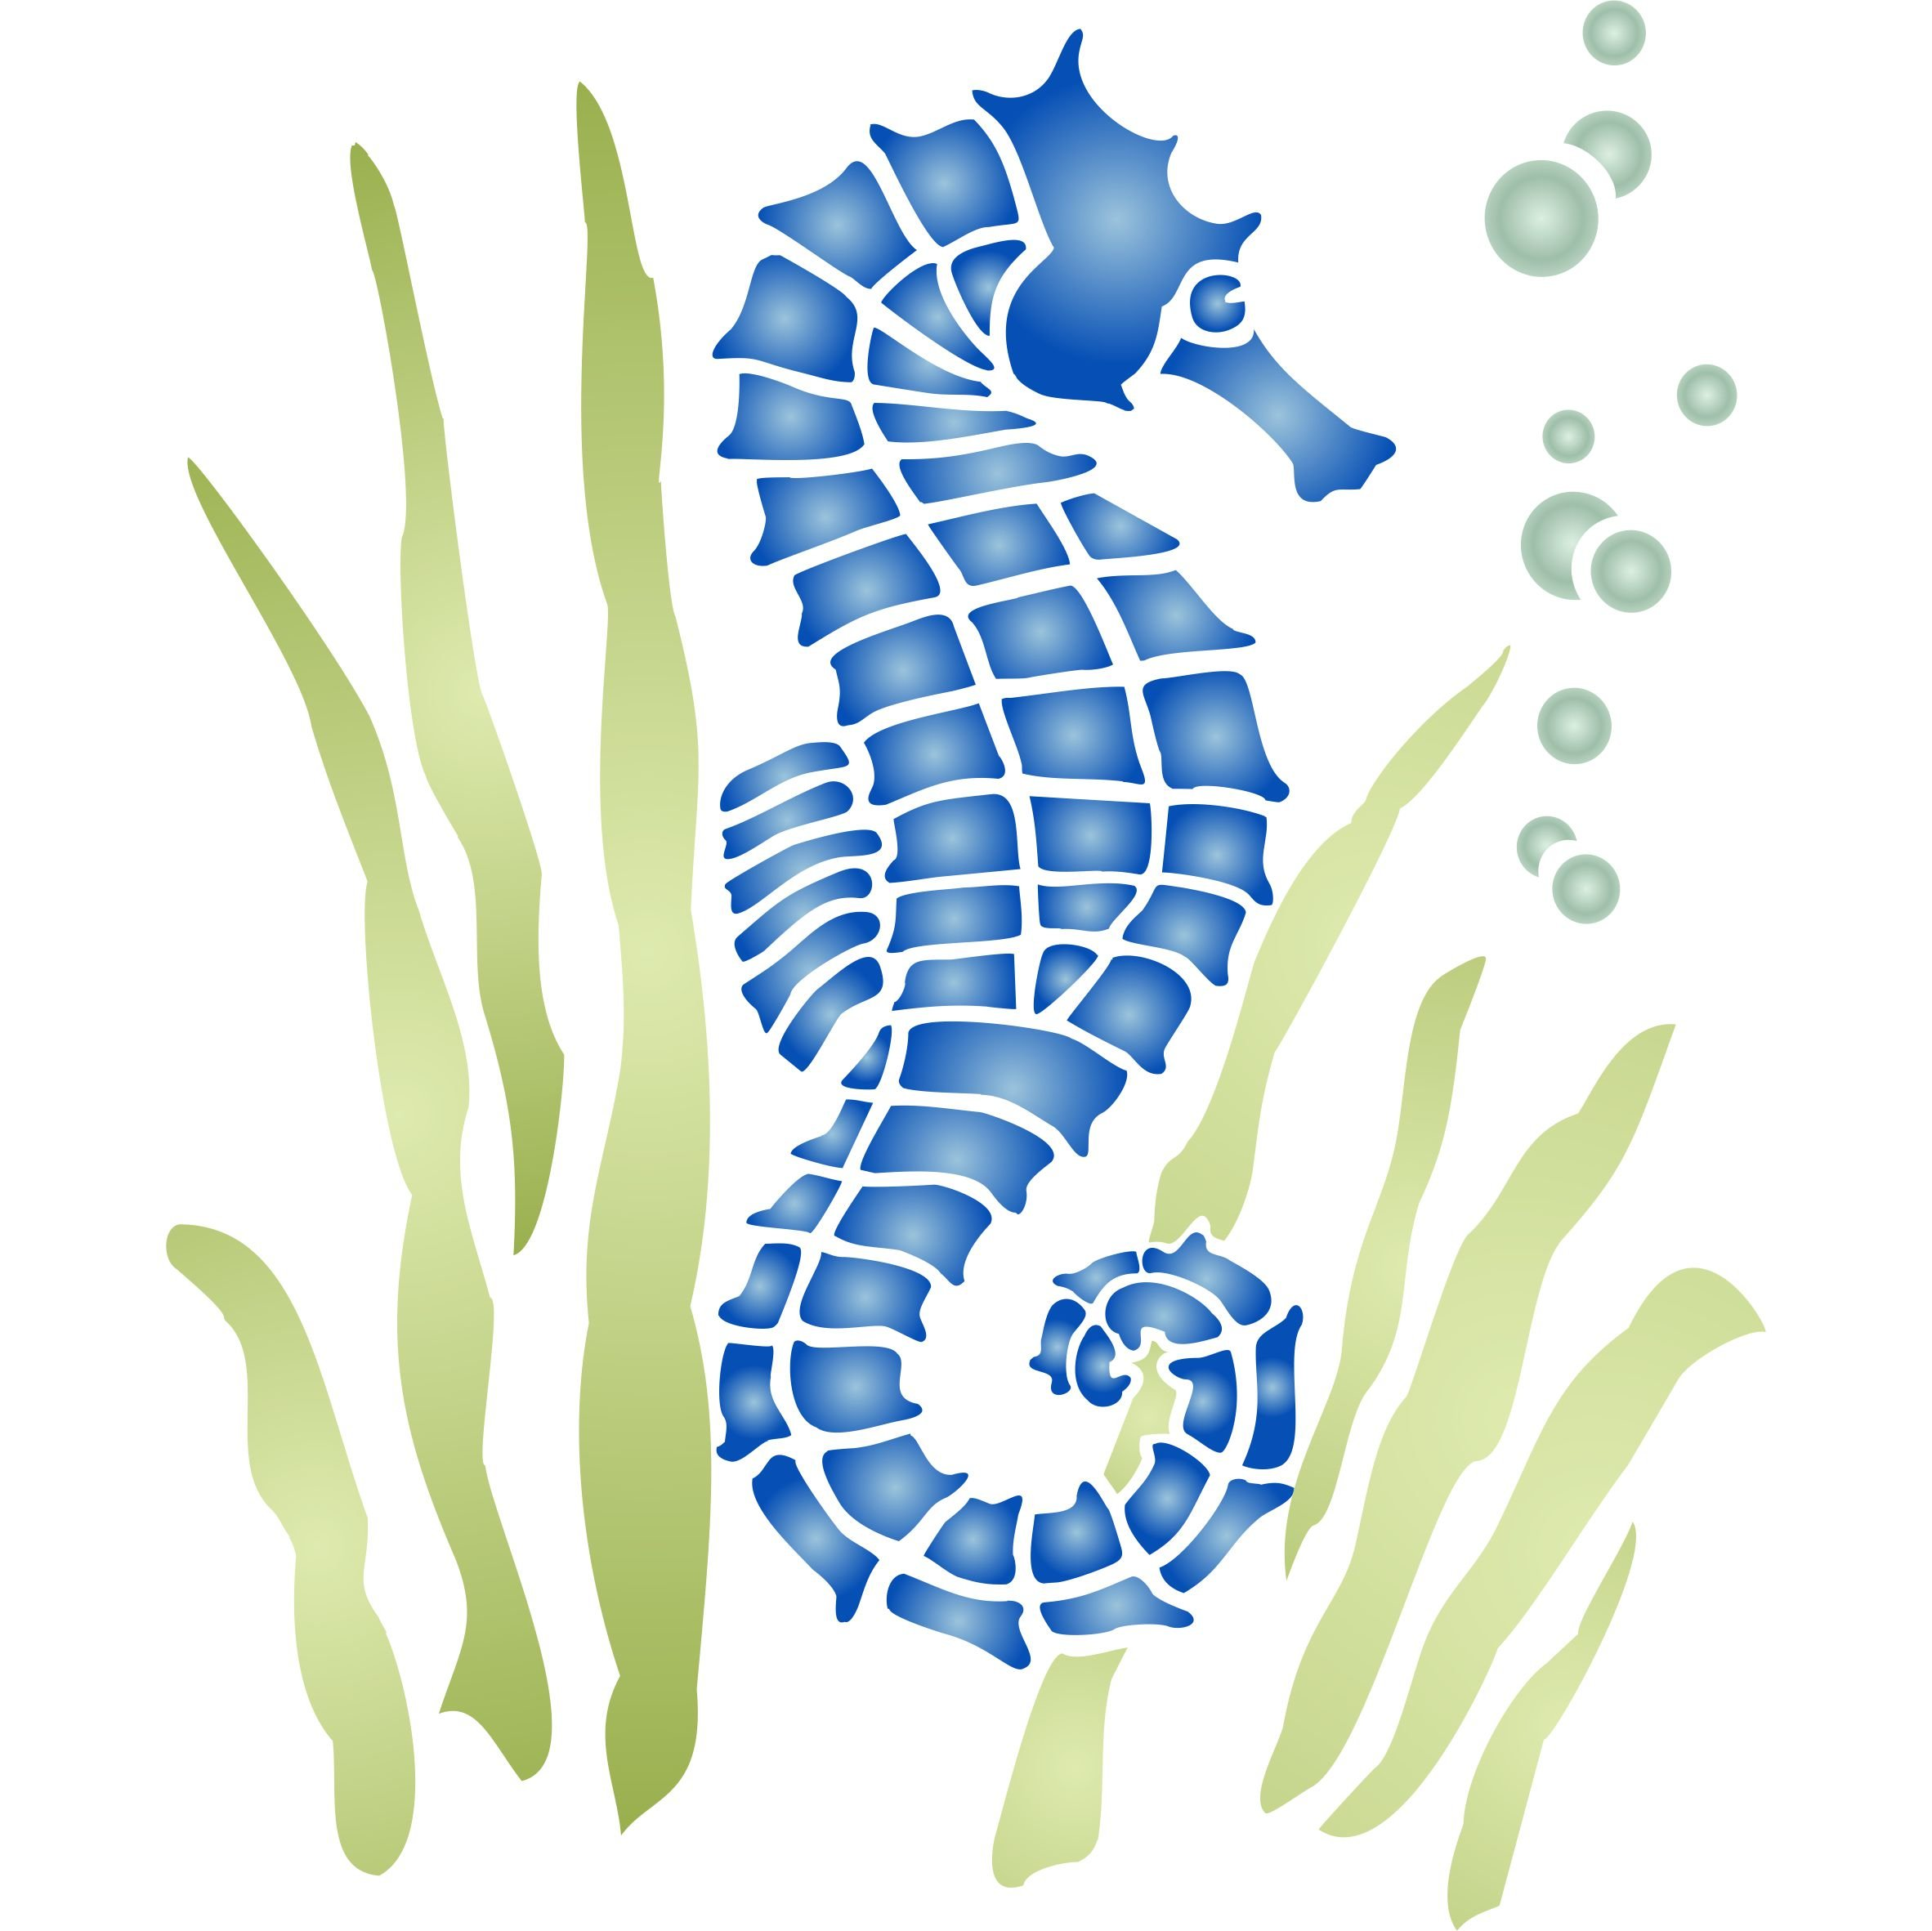 Seahorse Stencil (size 7.5'' w x 8.5'' h) Reusable Sea Ocean Nautical Seashore Reef Stencils for Painting - Use on Paper Projects Walls Floors Fabric Furniture Glass Wood etc.